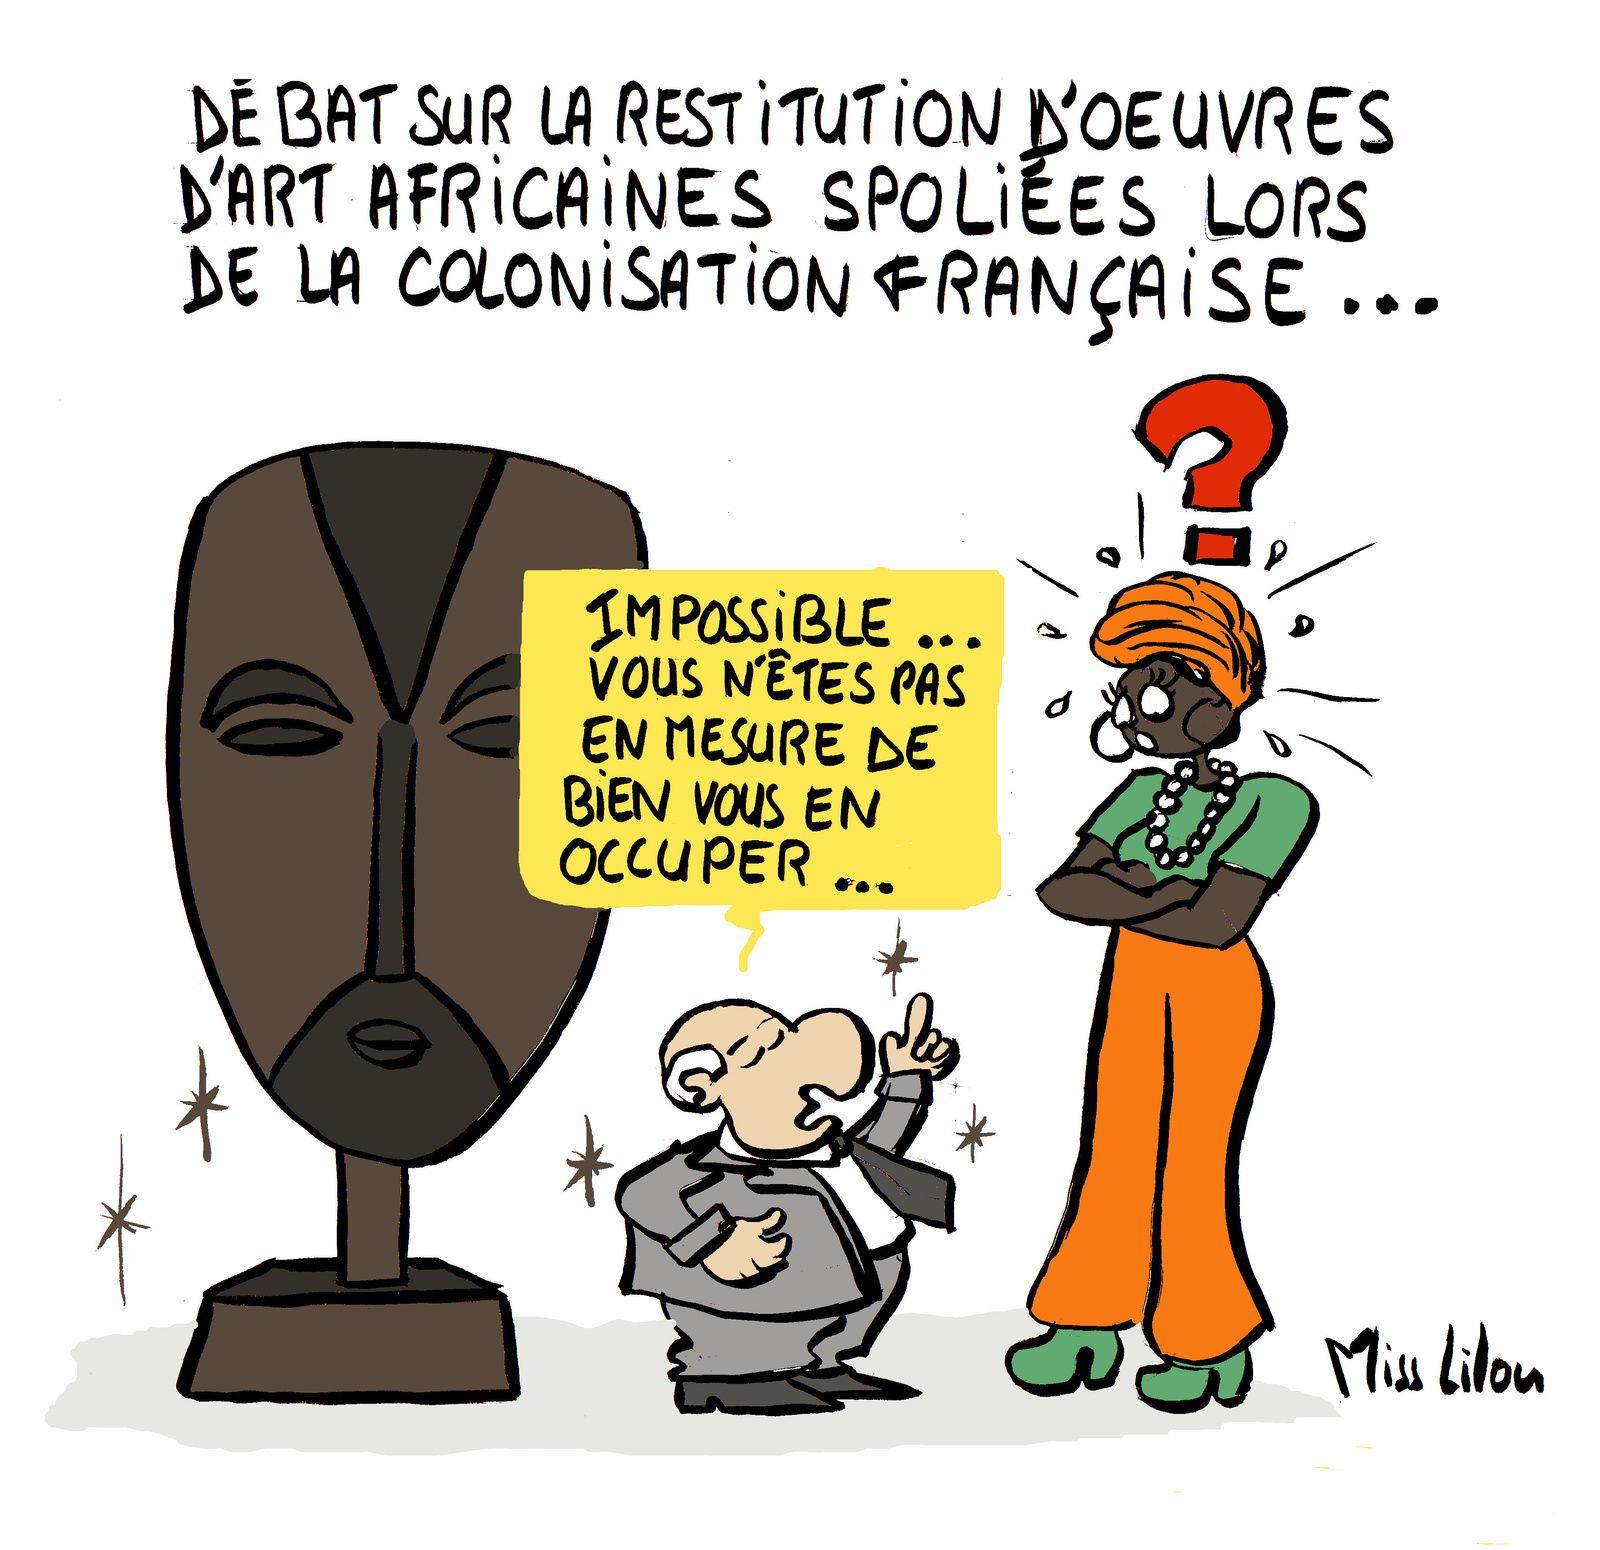 Restitution des oeuvres d'art africaines...